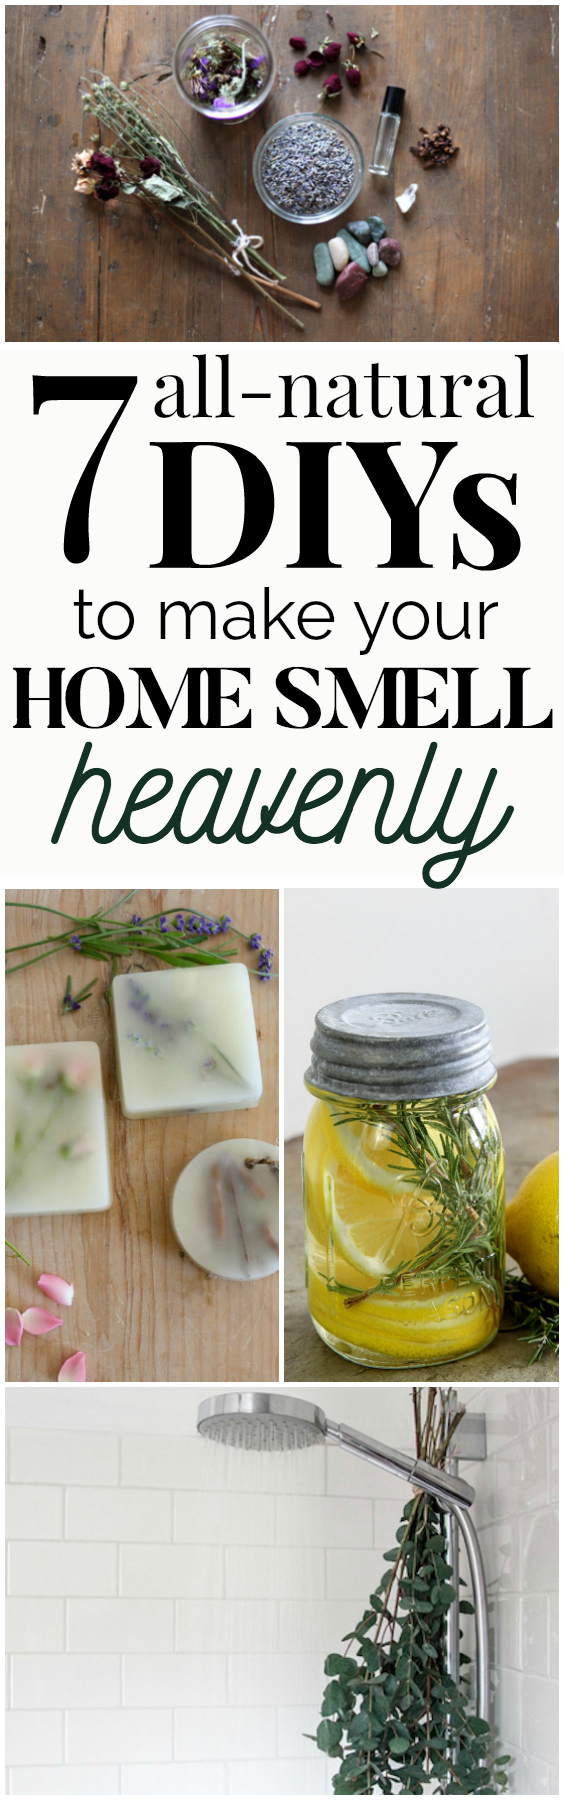 7 diy natural ways to make your home smell amazing for Things to make your house smell good